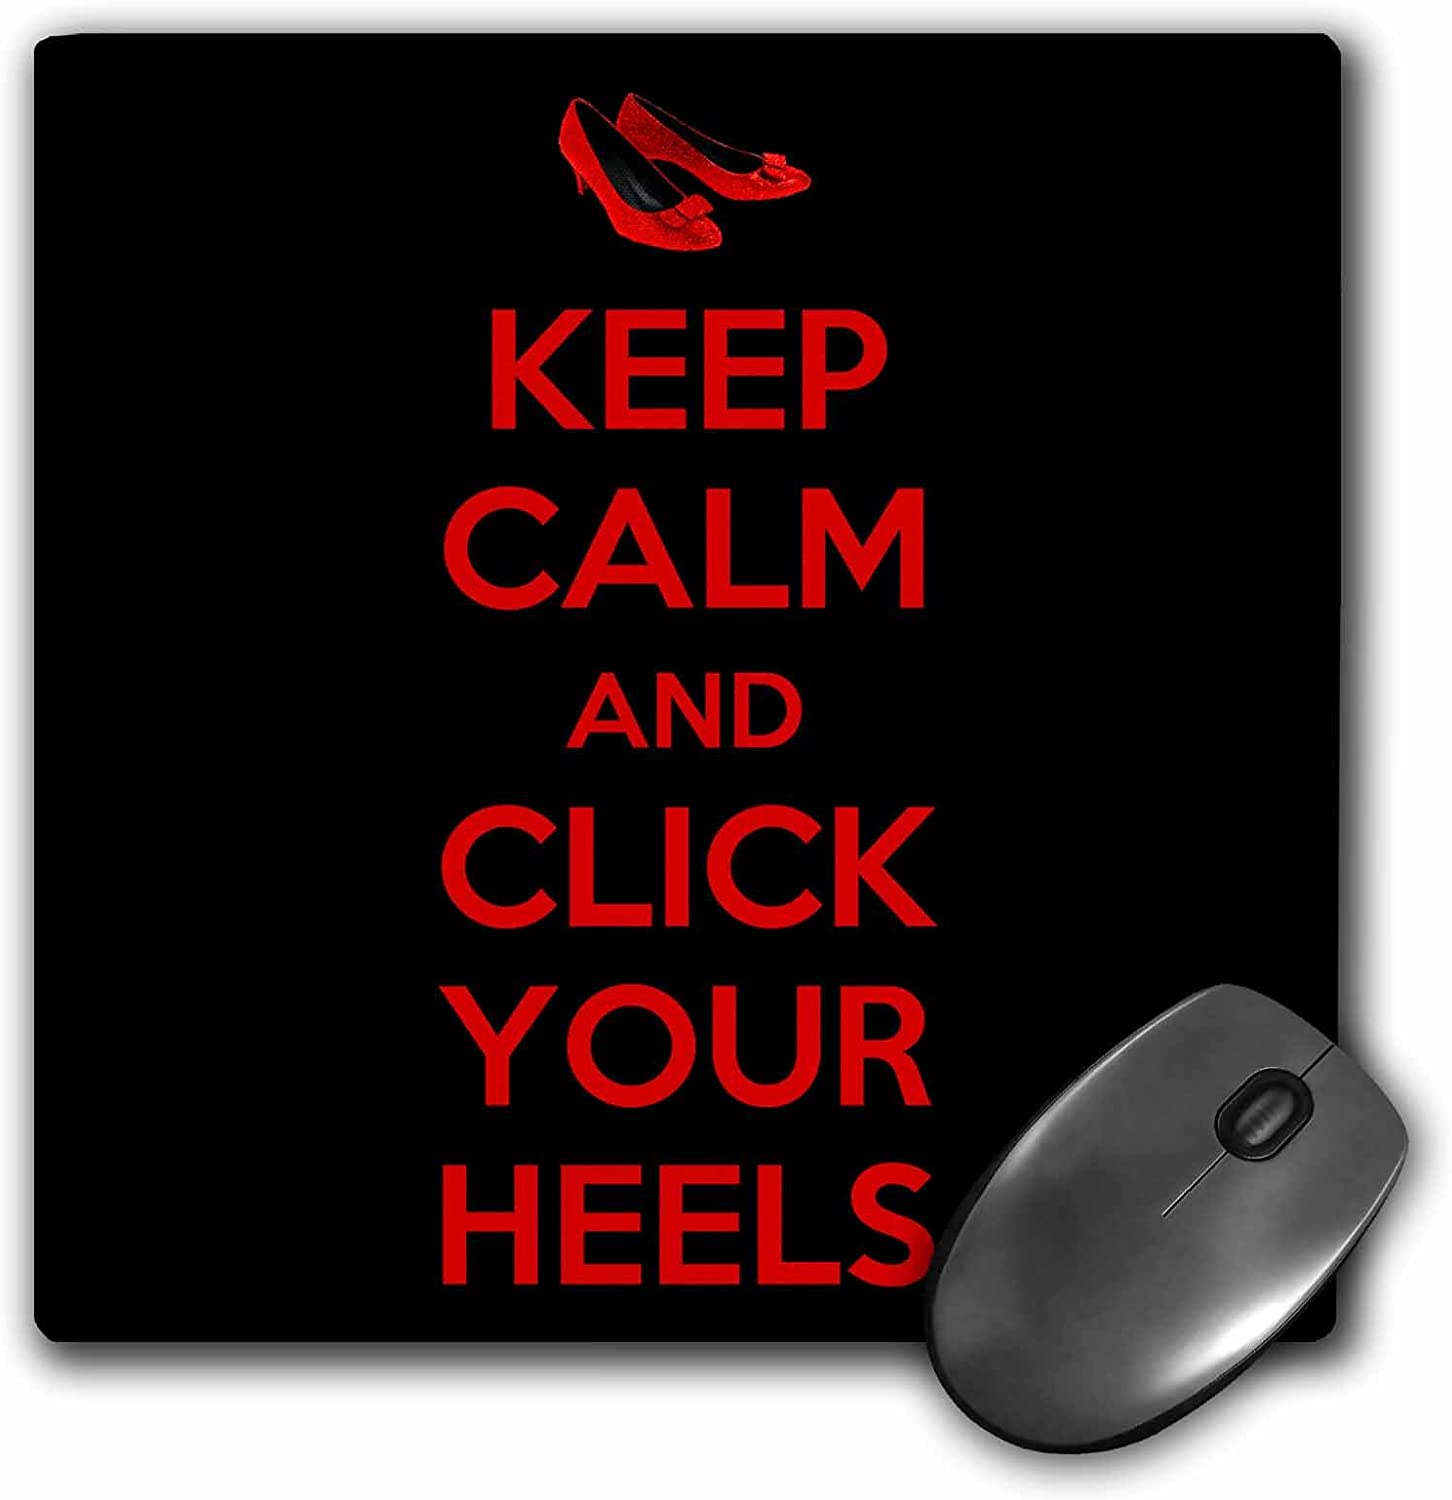 3drose Keep Calm and Click Your Heels Mouse Pad